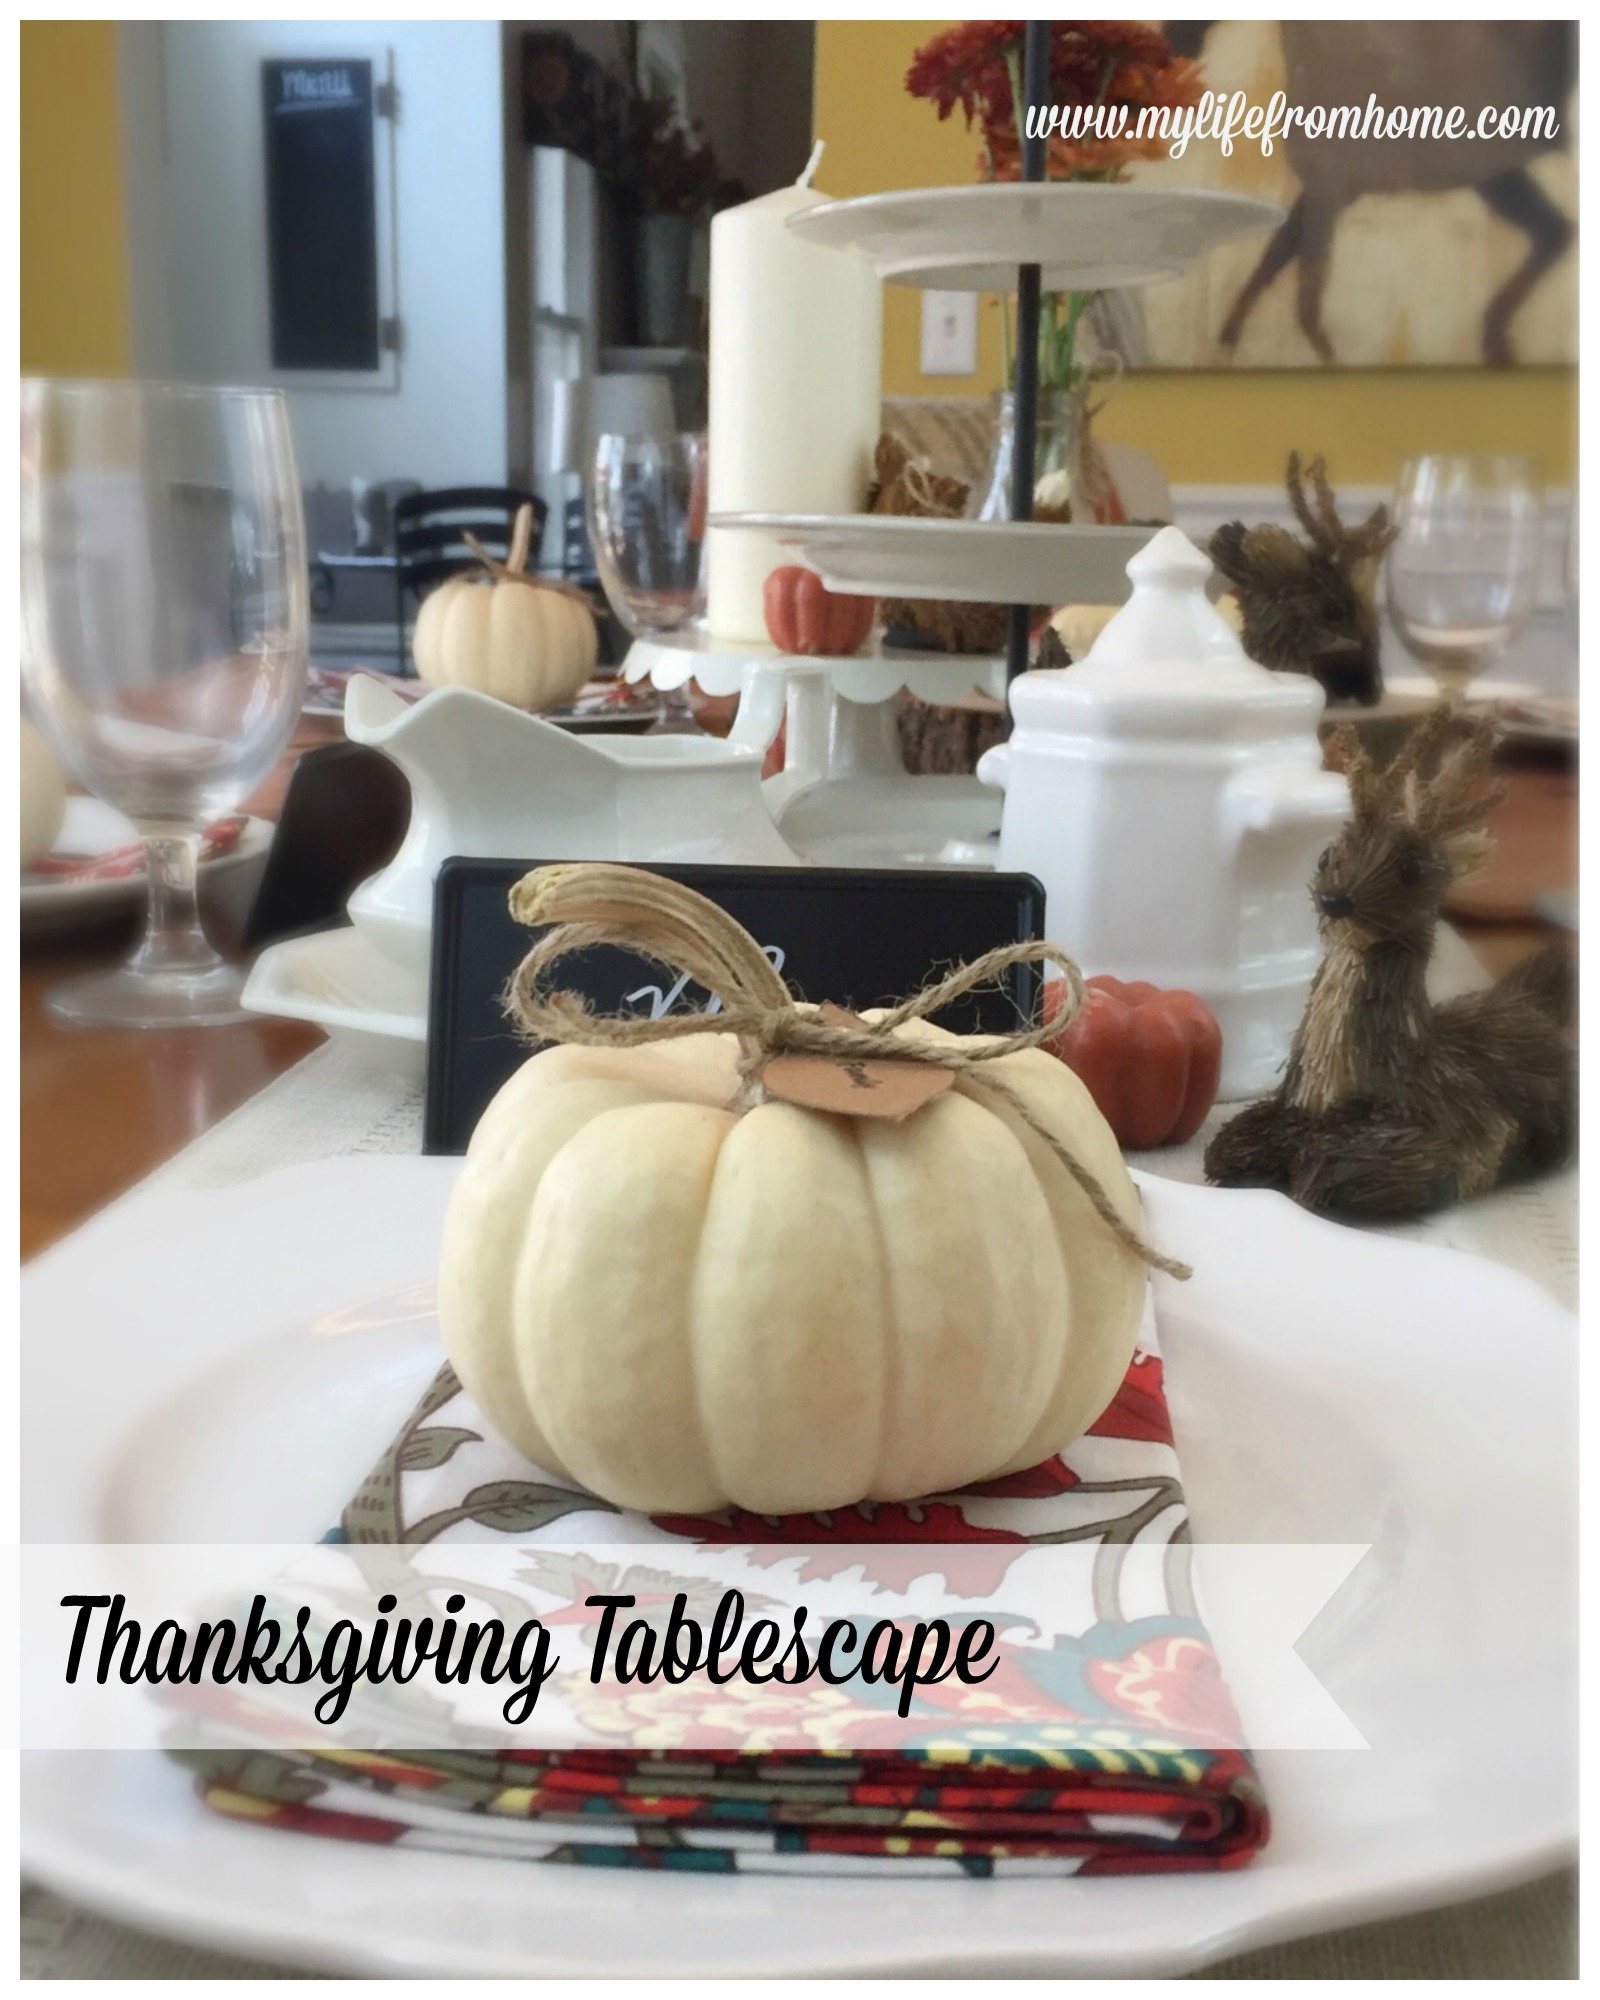 Thanksgiving Tablescape by www.mylifefromhome.com